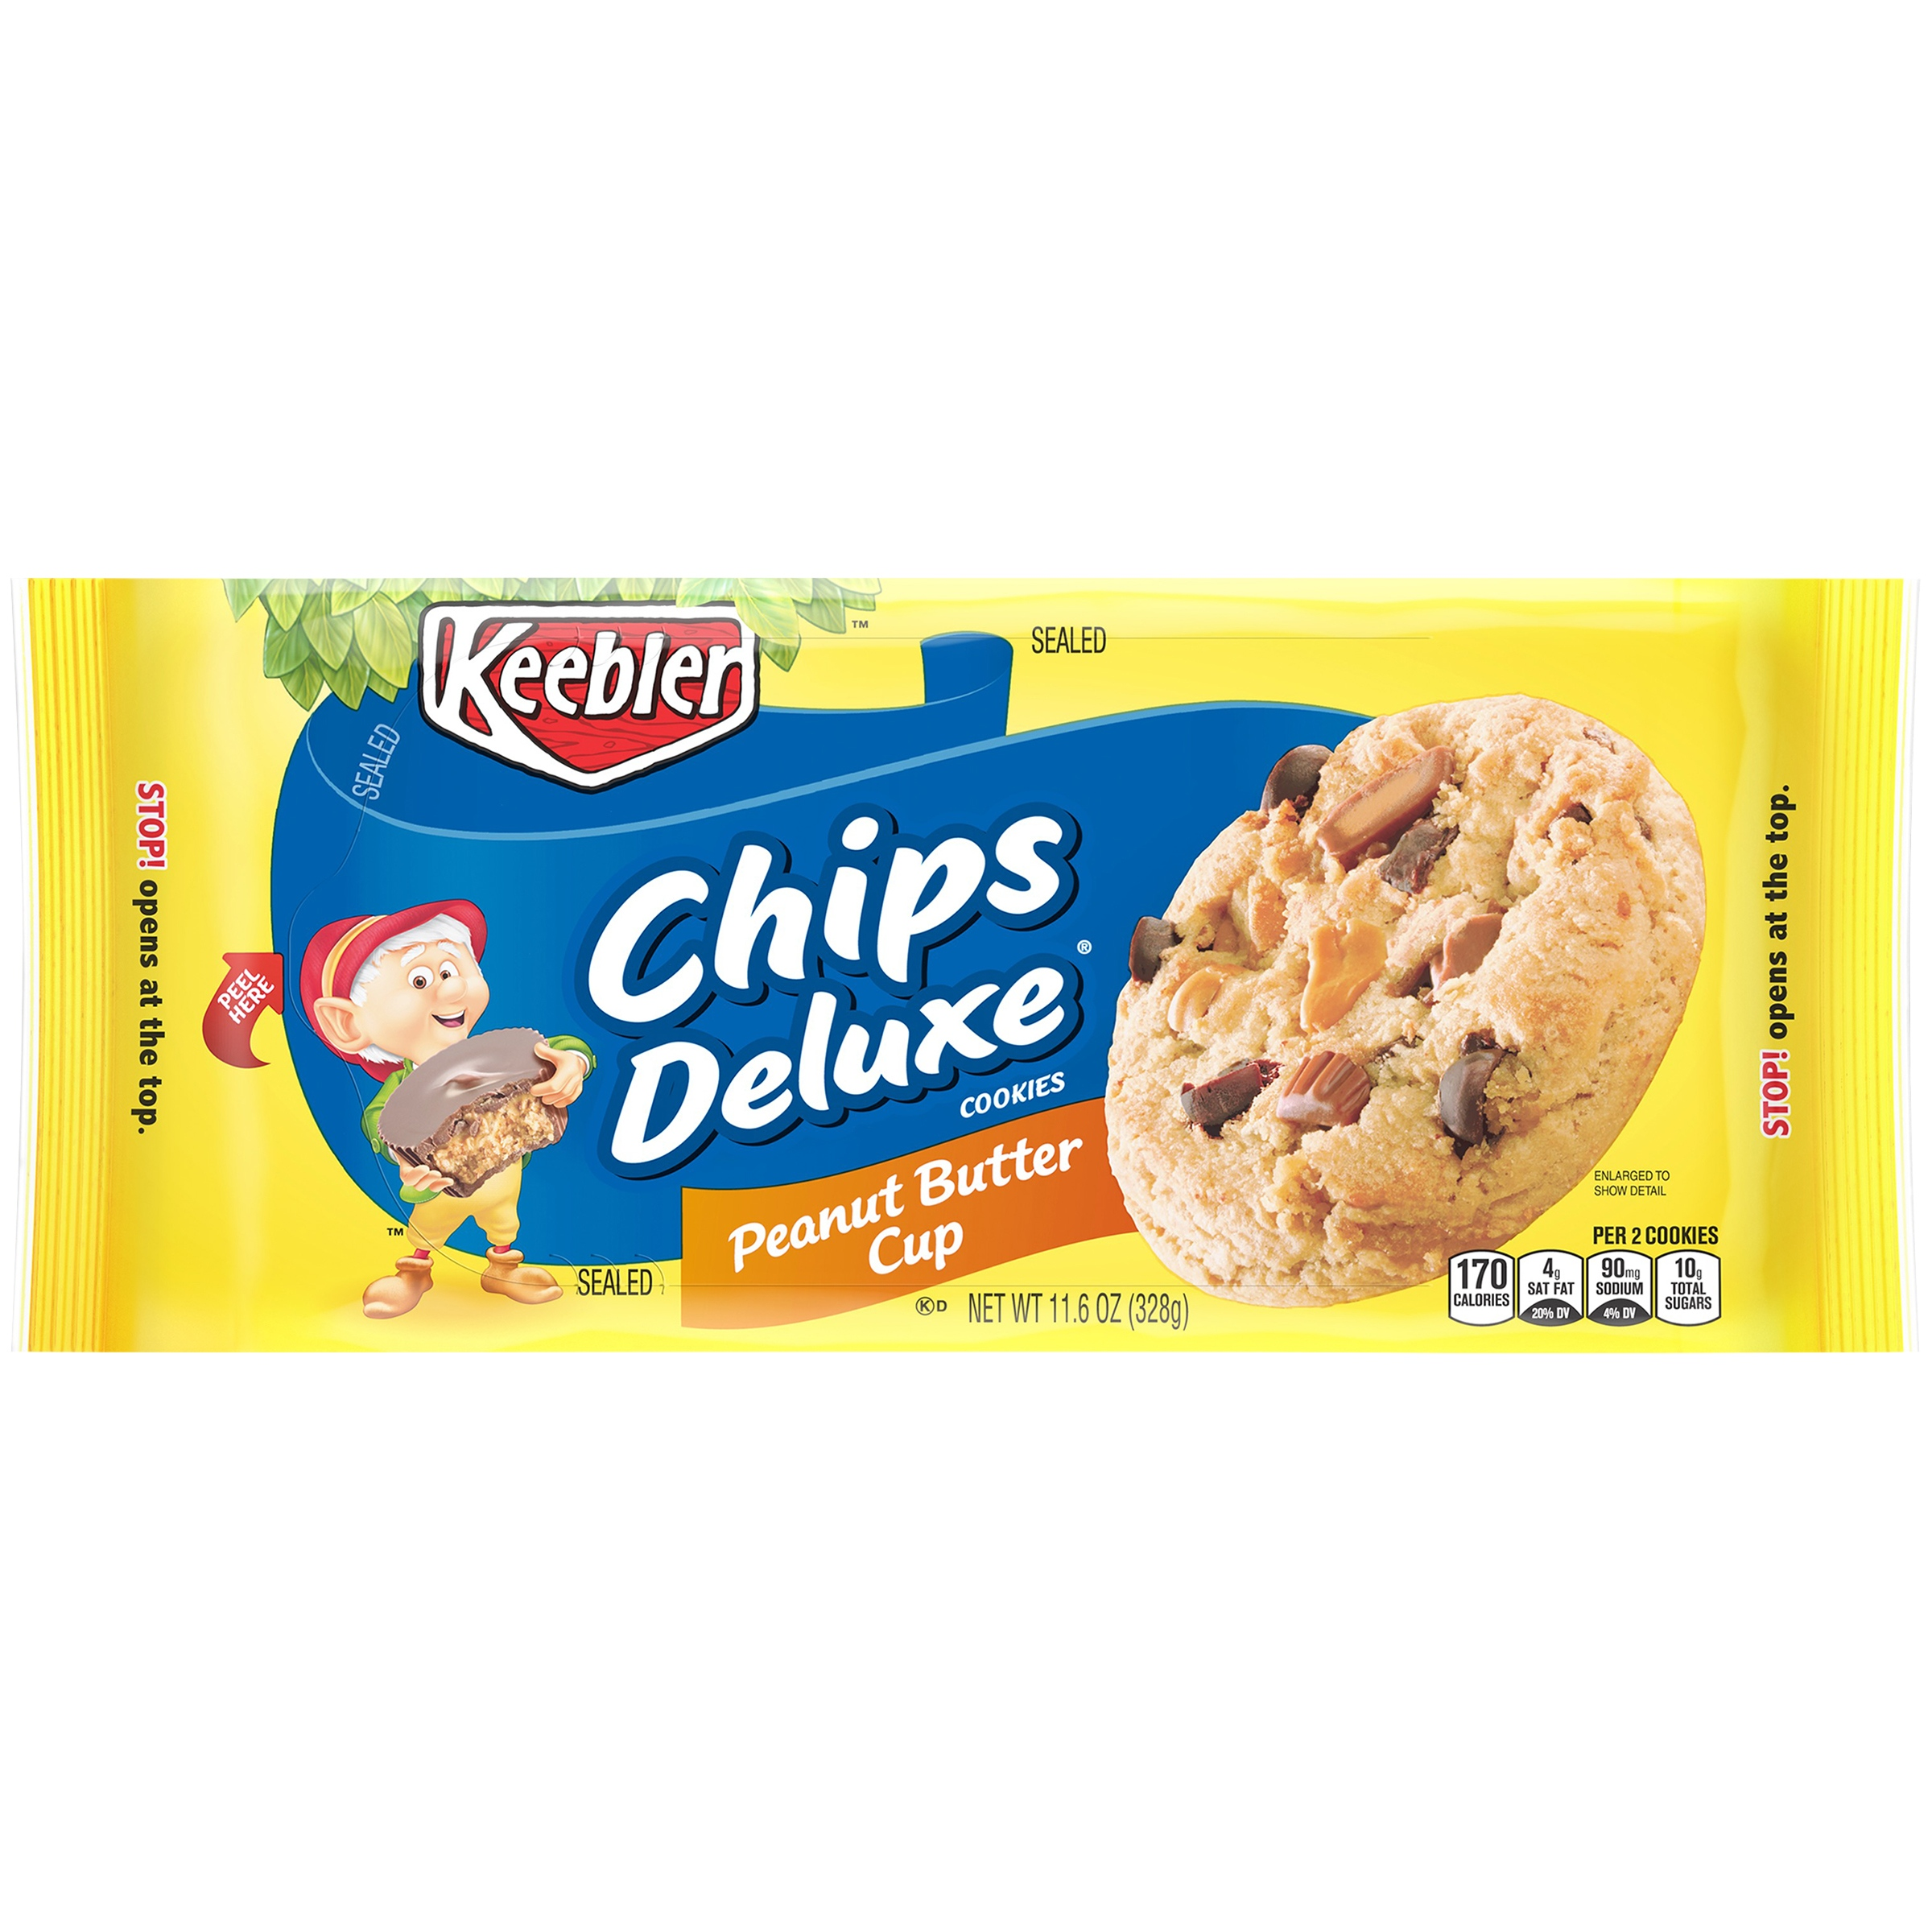 Keebler™ Chips Deluxe® Peanut Butter Cups Cookies 11.6 oz. Pack